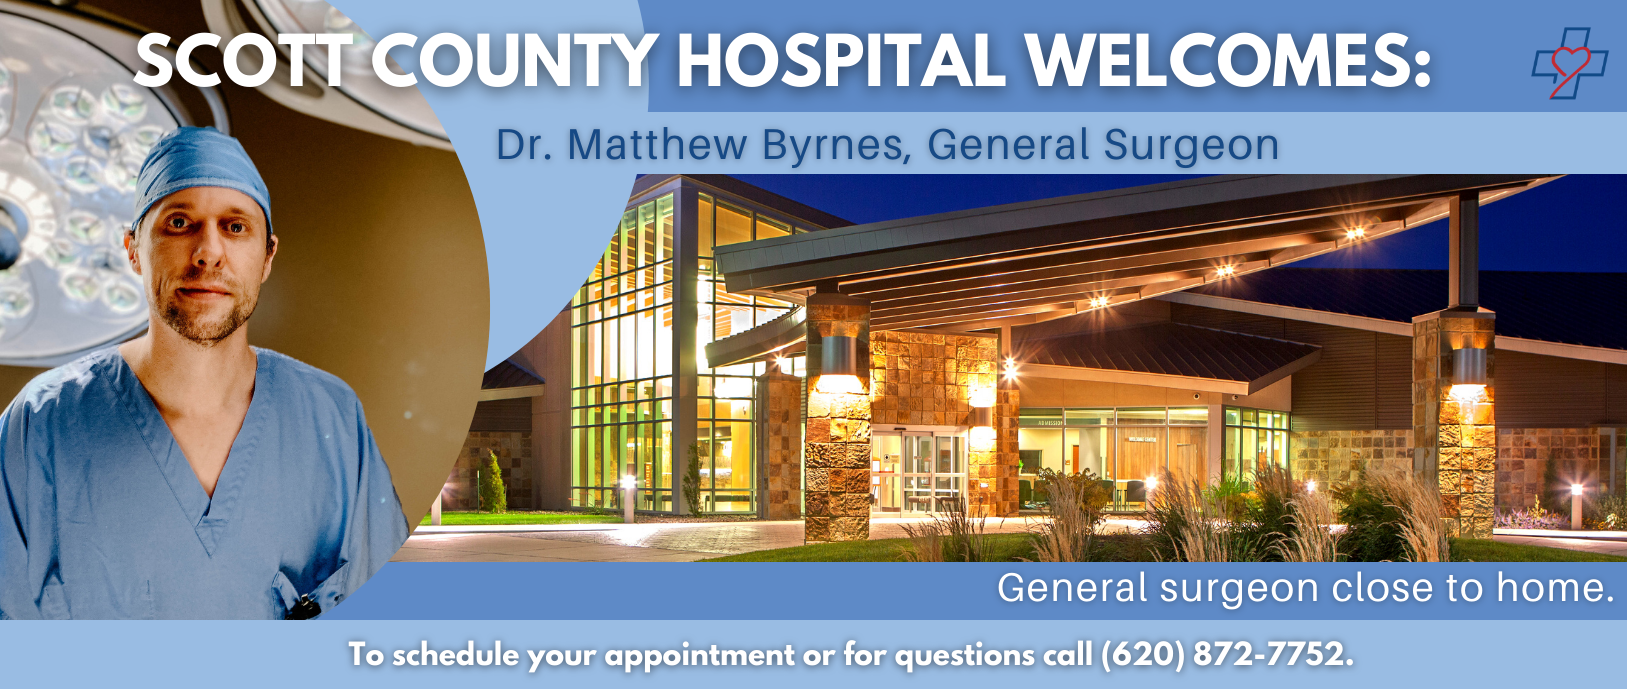 Scott County Hospital Welcomes: Dr. Matthew Byrnes, General Surgeon.